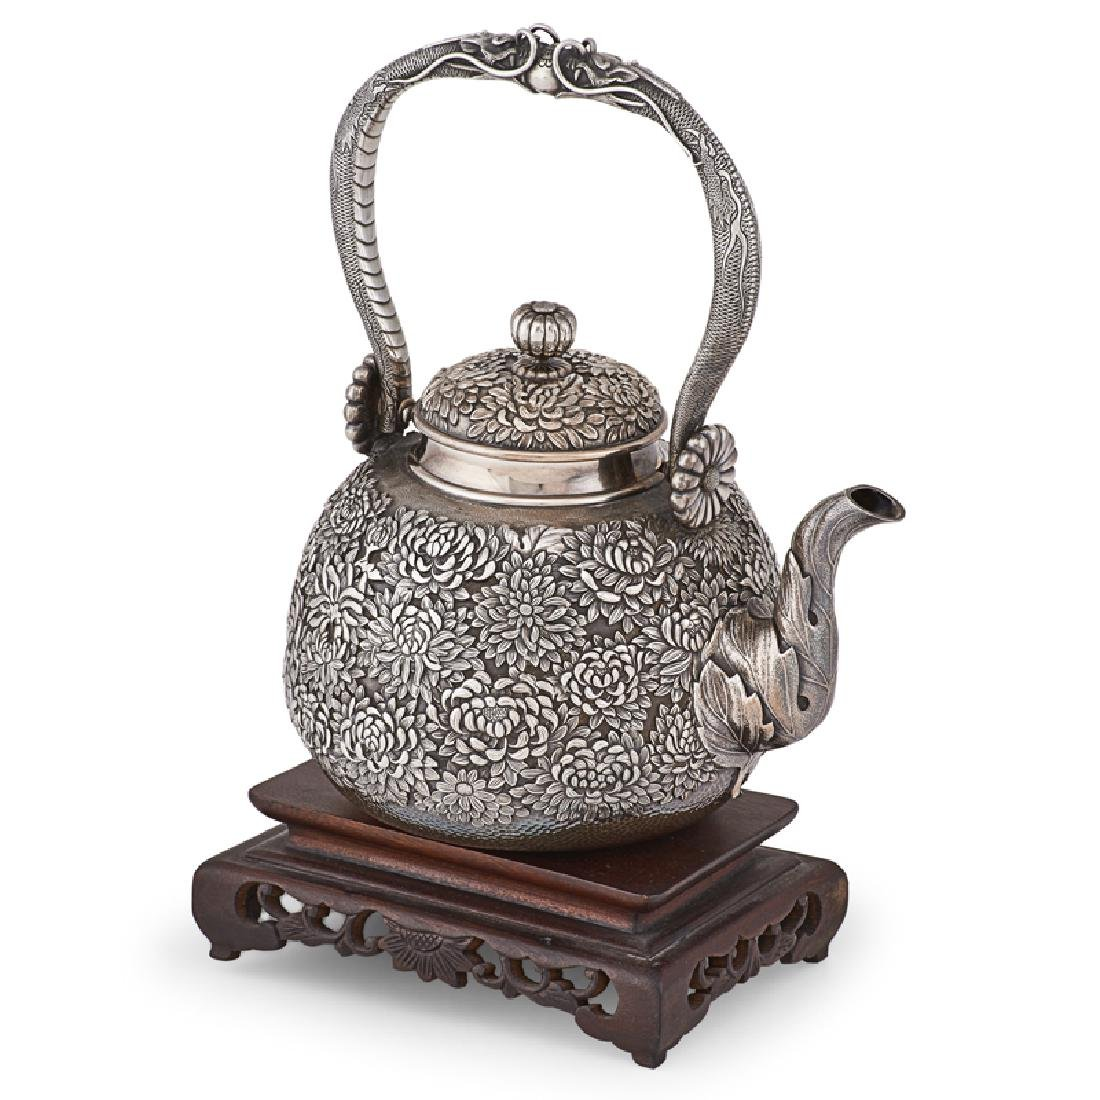 CHINESE SILVER REPOUSSE TEAPOT ON STAND